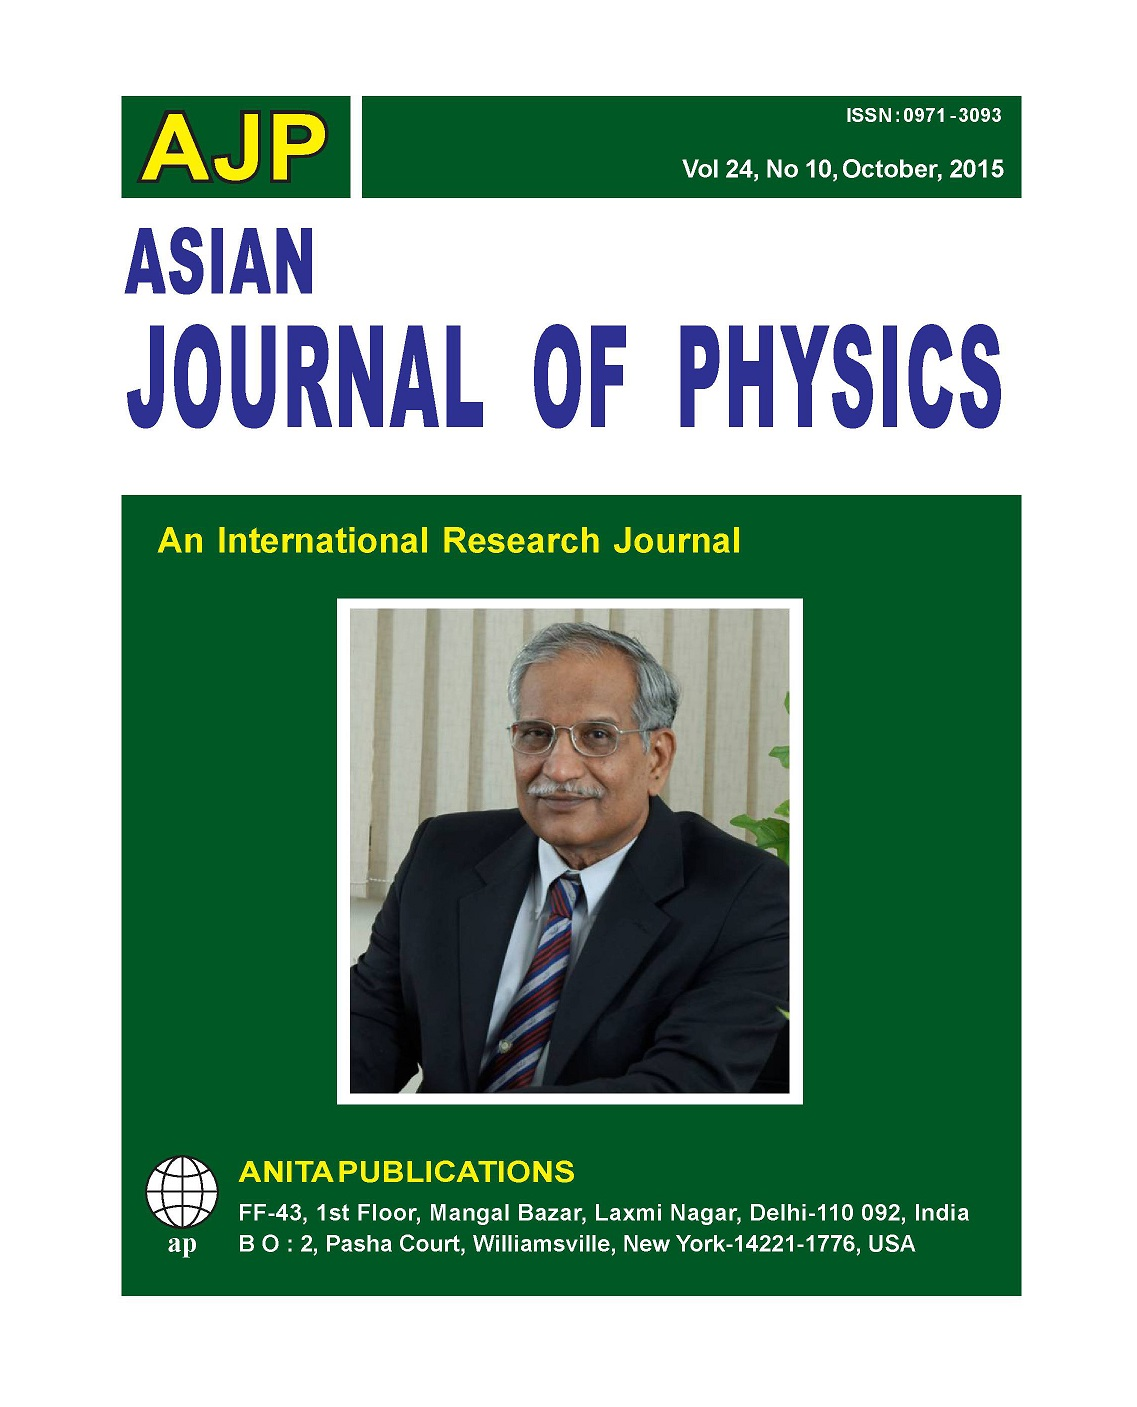 AJP Vol. 24 No 1, 2015